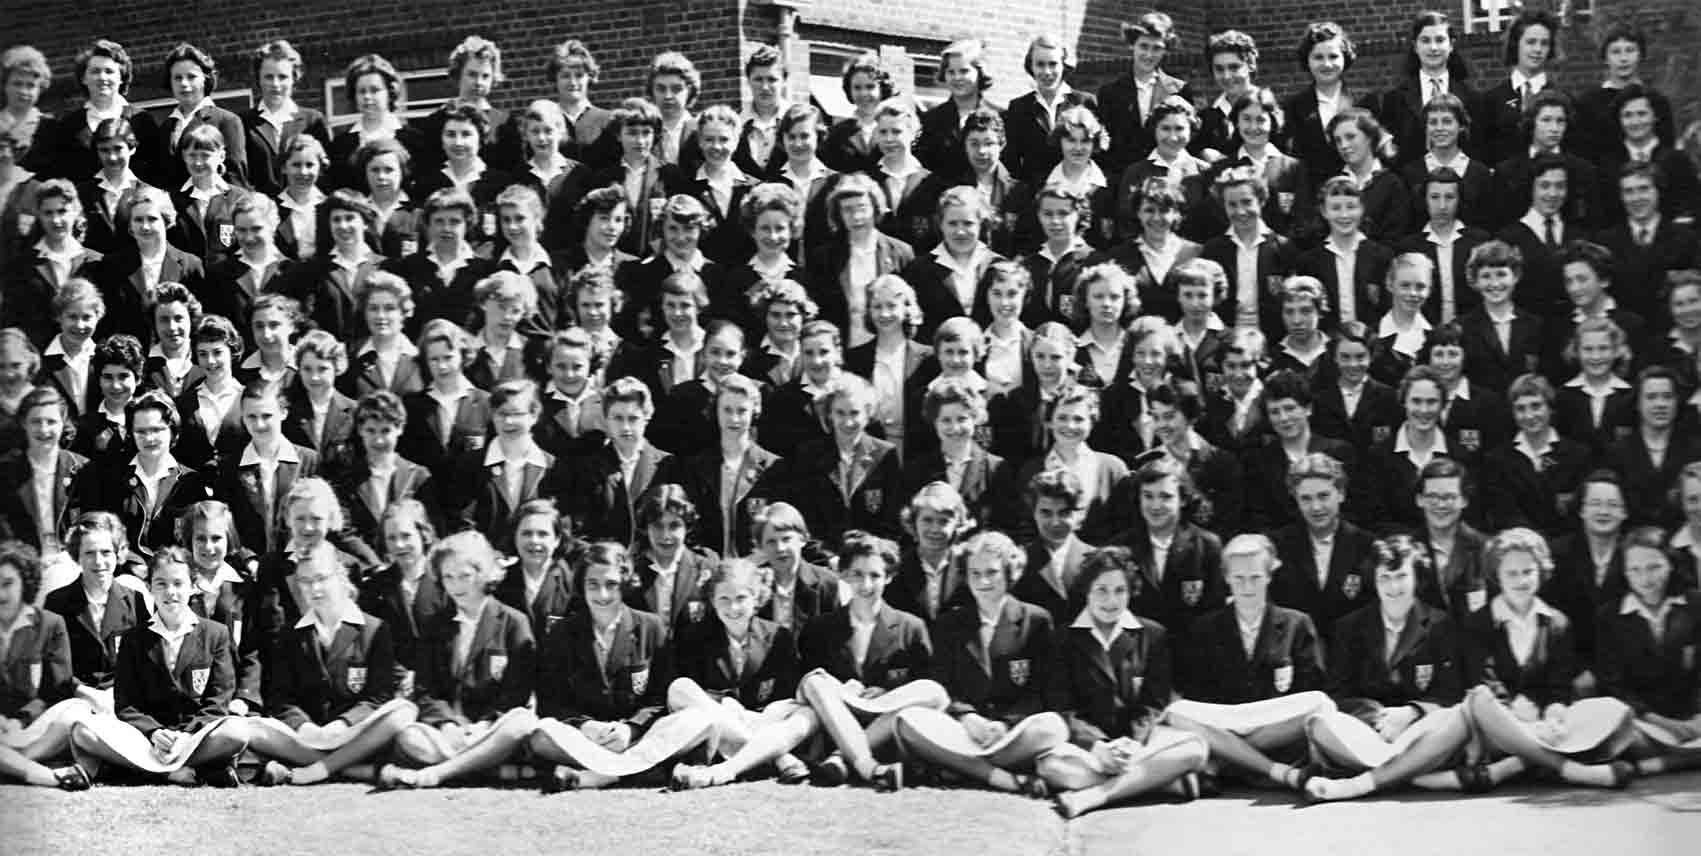 Fifth section of the 1957 School photograph for Copthall County Grammar School